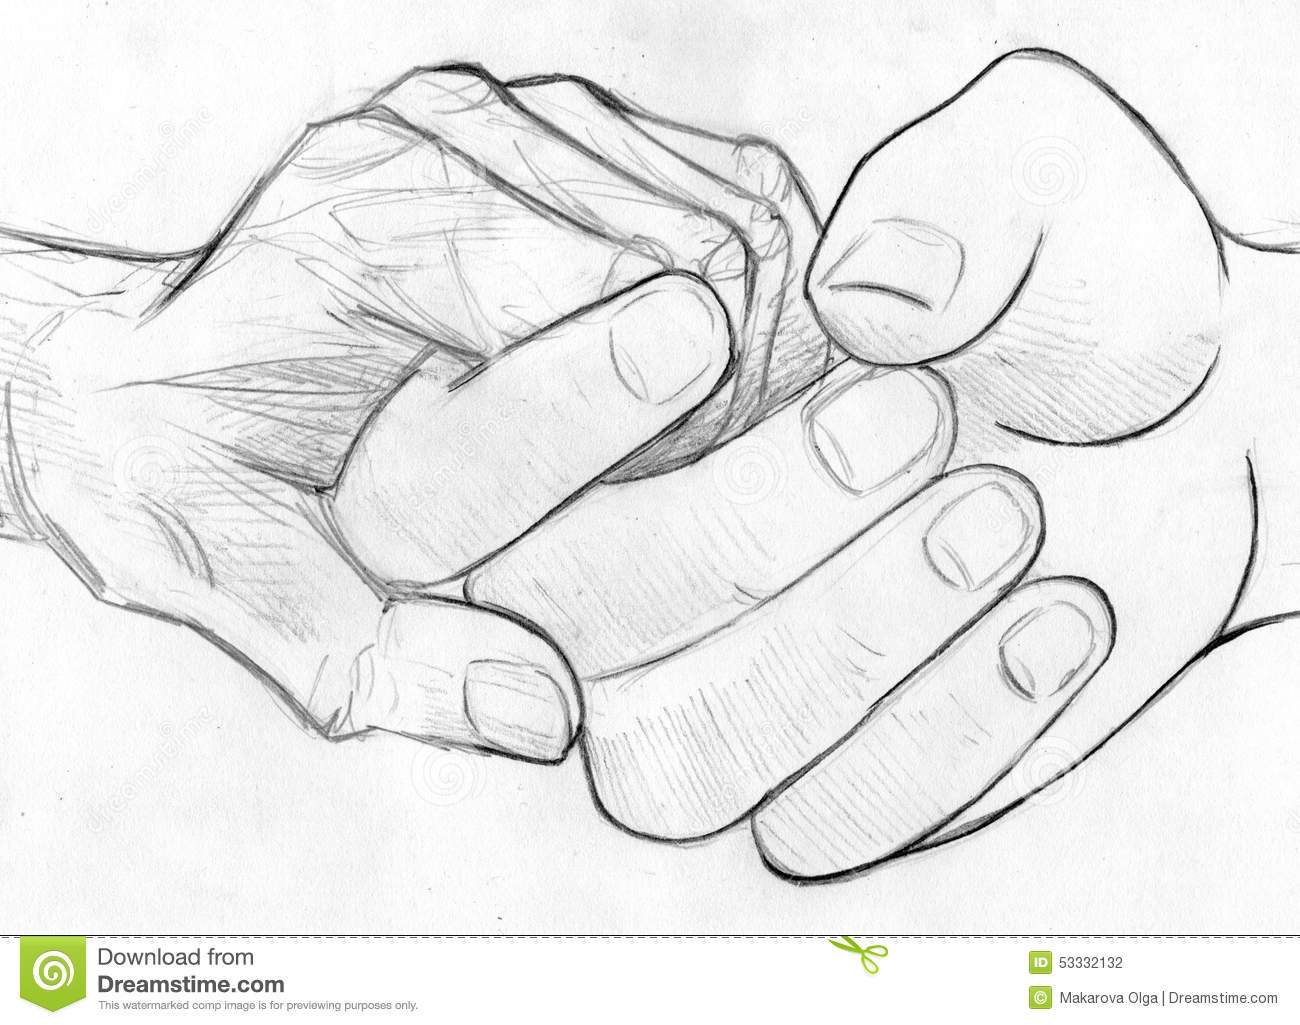 1300x1025 Boy Holding Girl Hand Pencil Art Pencil Sketch Of Boy And Girl